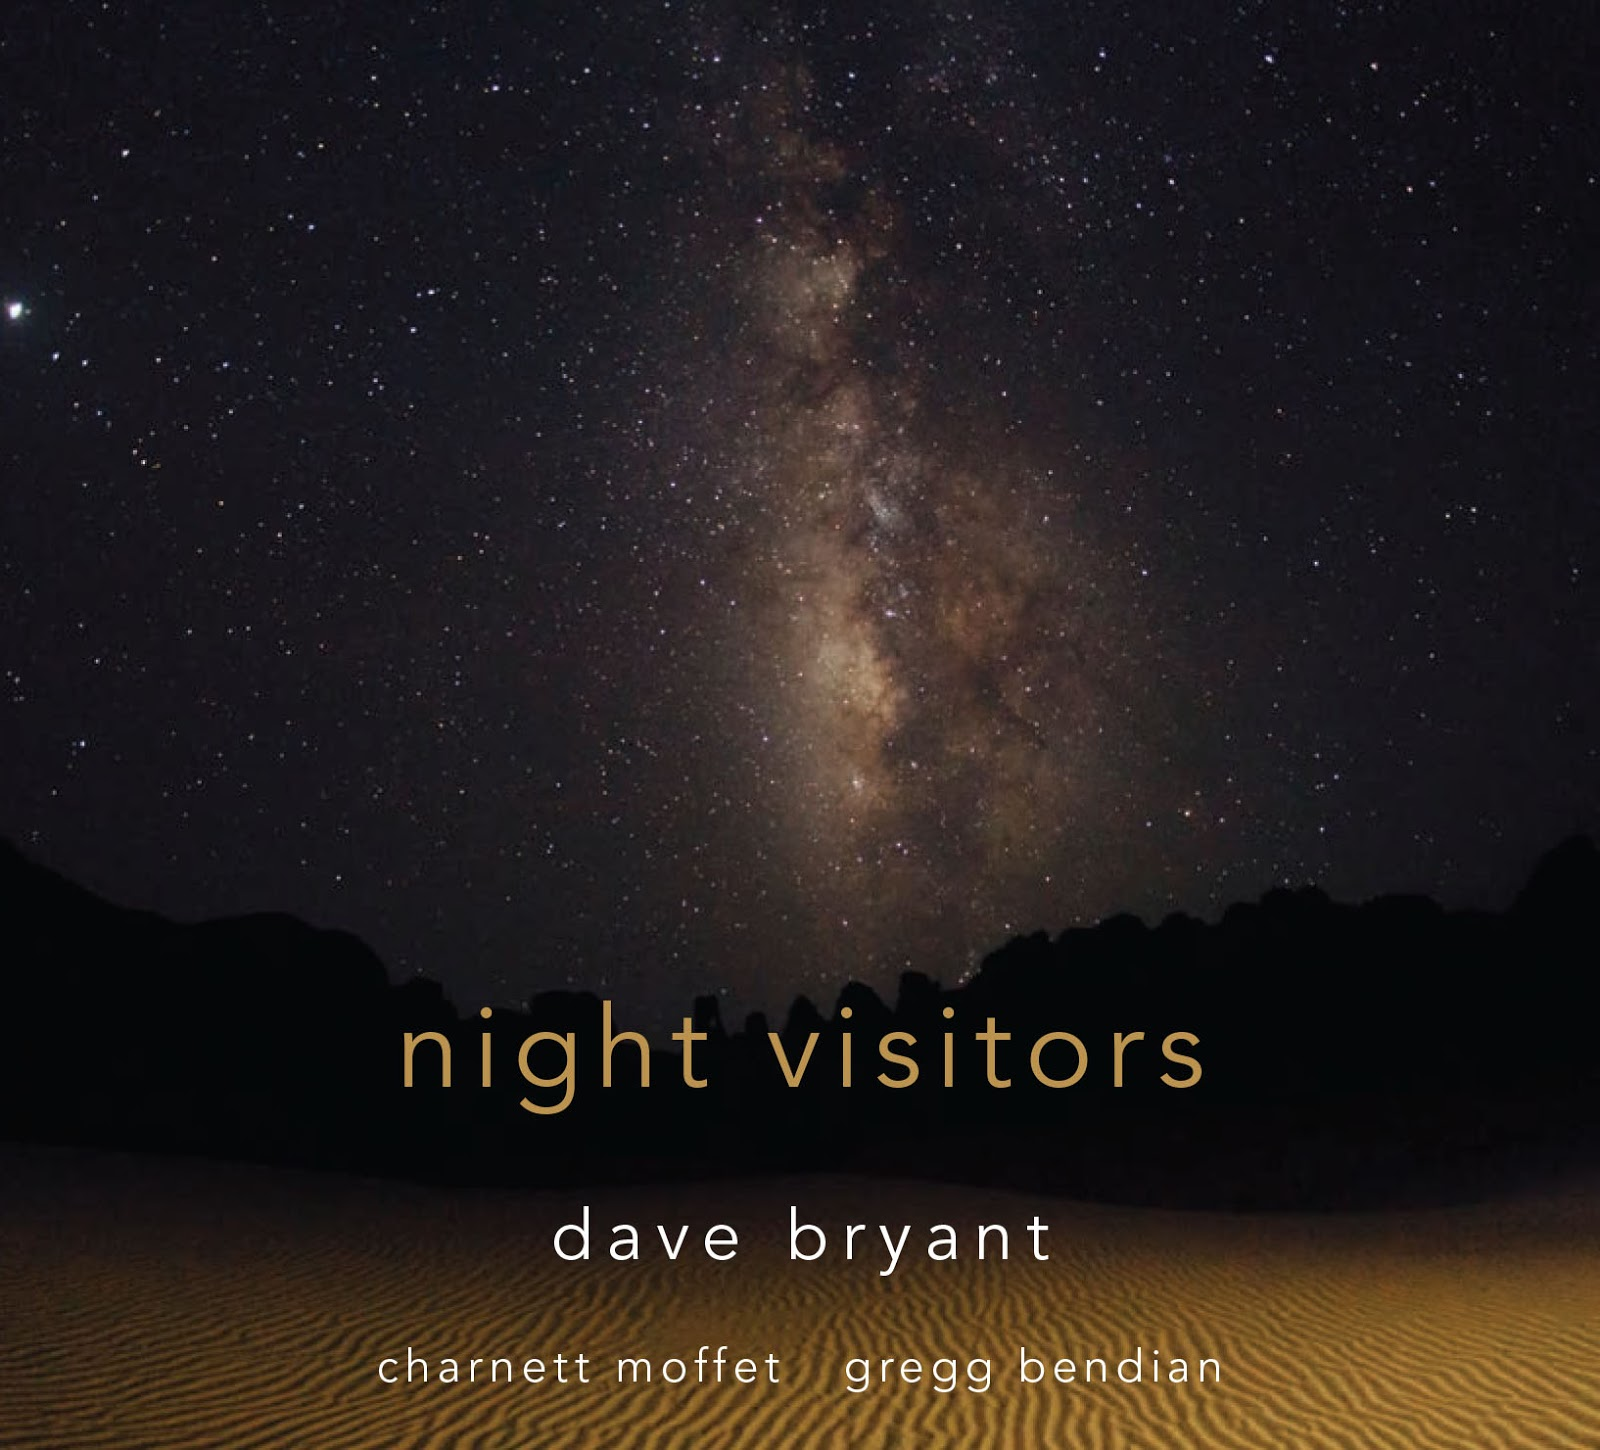 NEW RELEASE: Dave Bryant's NIGHT VISITORS is out June 19th